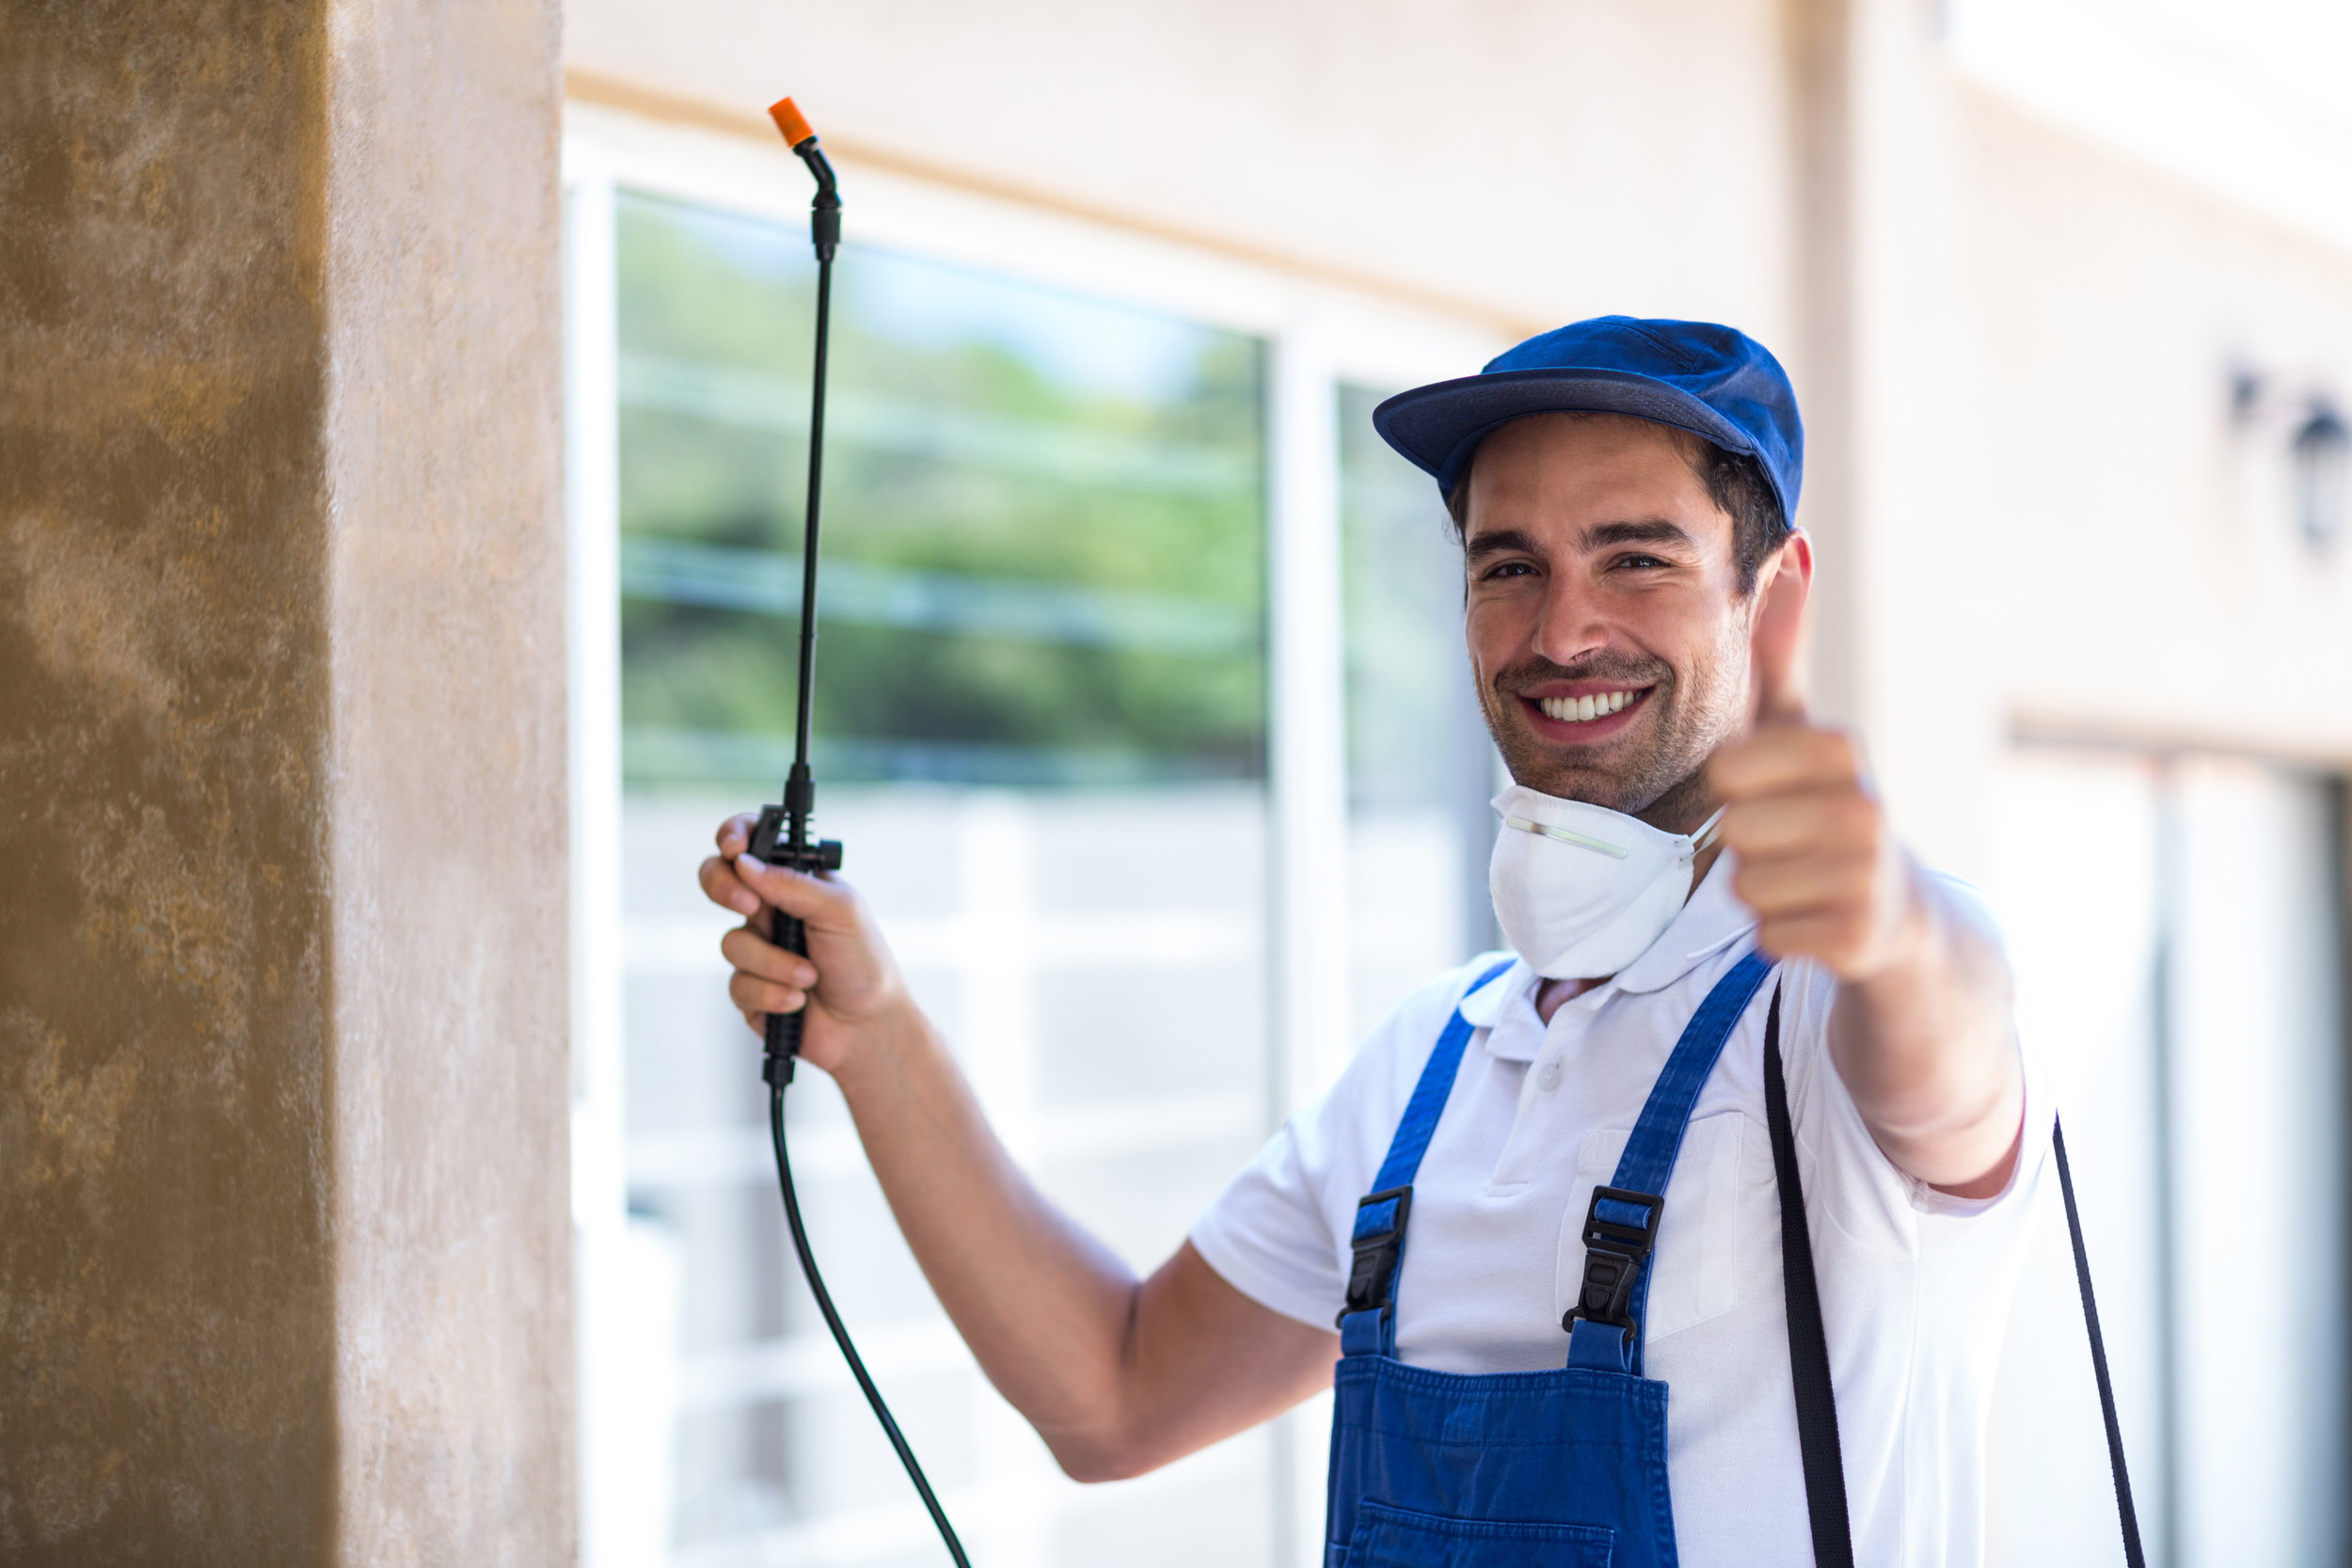 Take Back Your Home! - Professional Pest Control That's Effective & Affordable